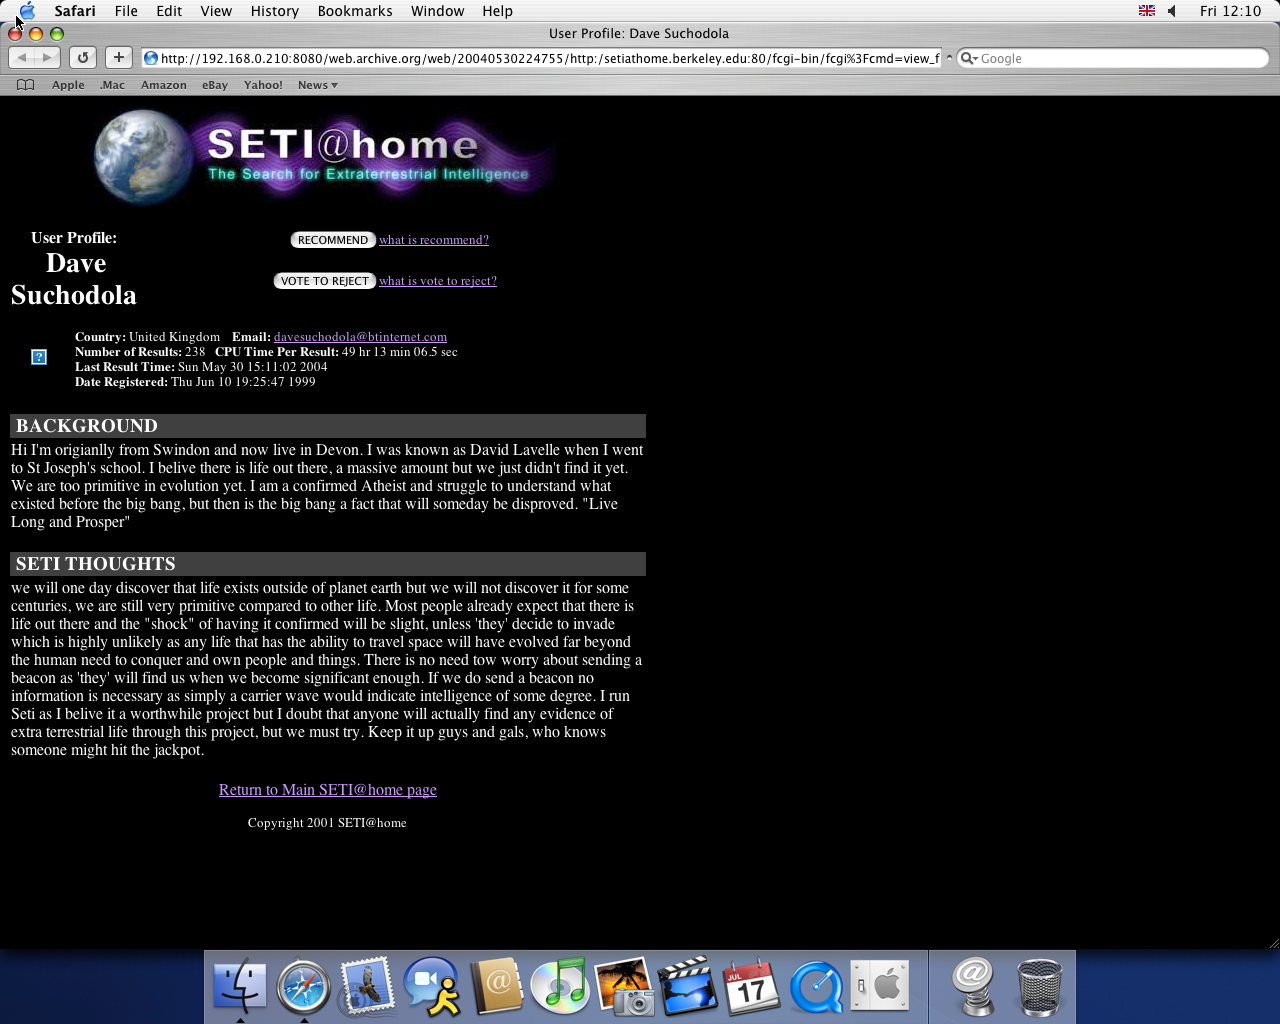 OS X 10.3 PPC with Safari 1.1 displaying a page from Seti@Home archived at May 30, 2004 at 22:47:55